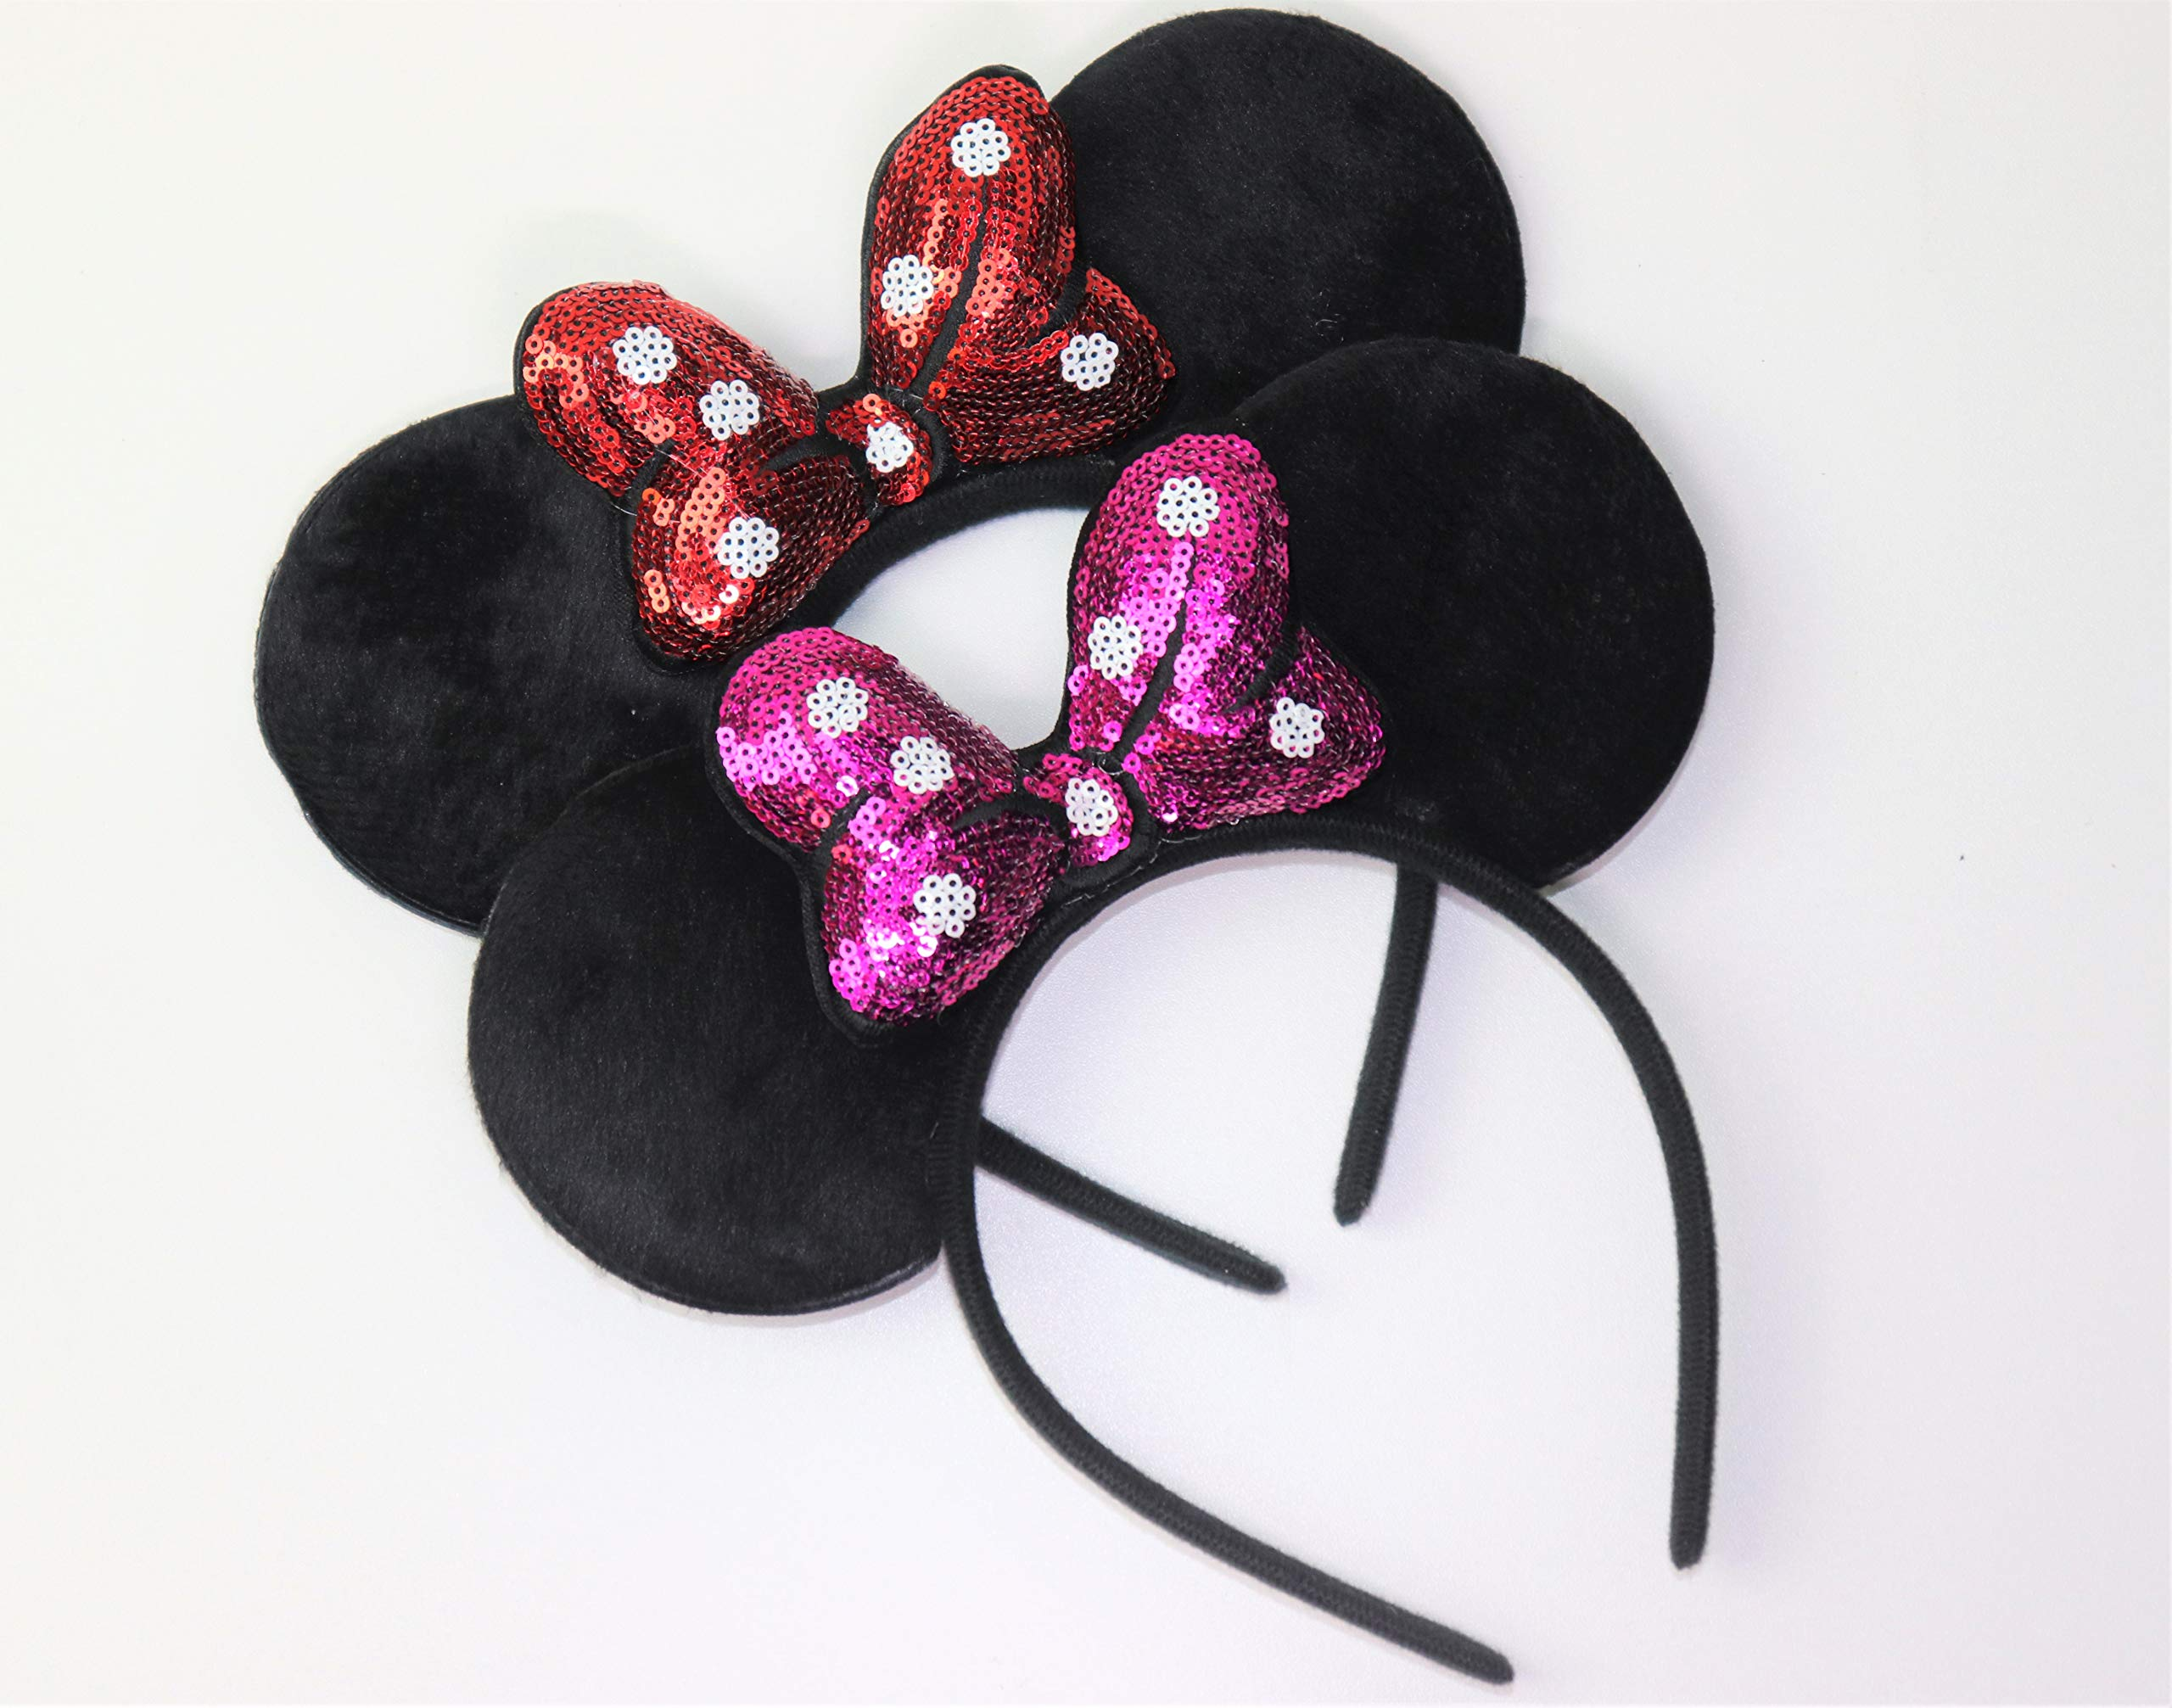 Mickey/Minnie Mouse Style Ears Boys, Girls, Children, Adults, Halloween (Puffy Sparkling Sequin (1 Red, 1 Fuchsia))